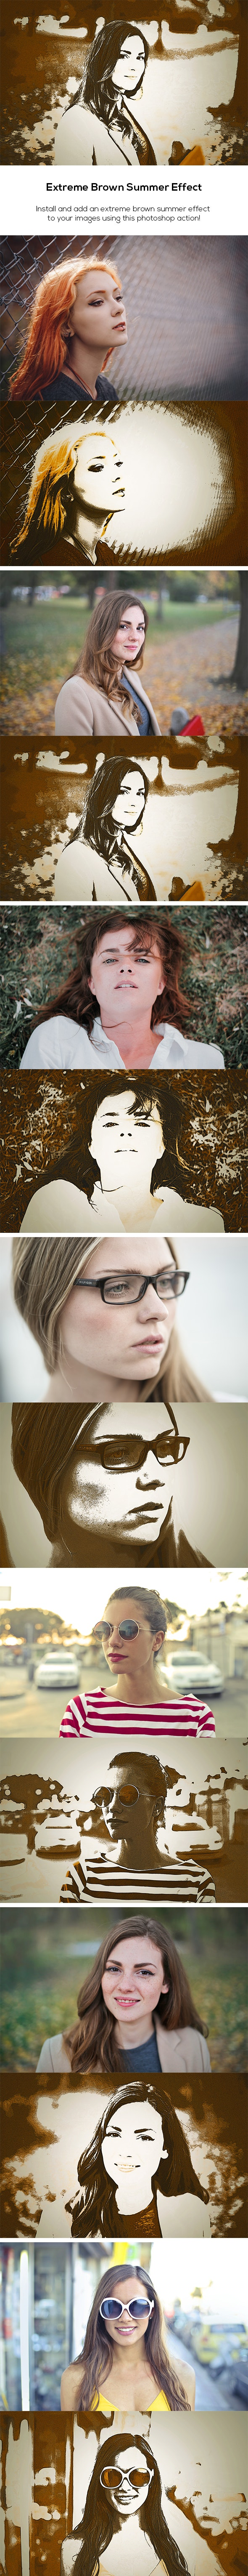 Extreme Brown Summer Effect - Photo Effects Actions